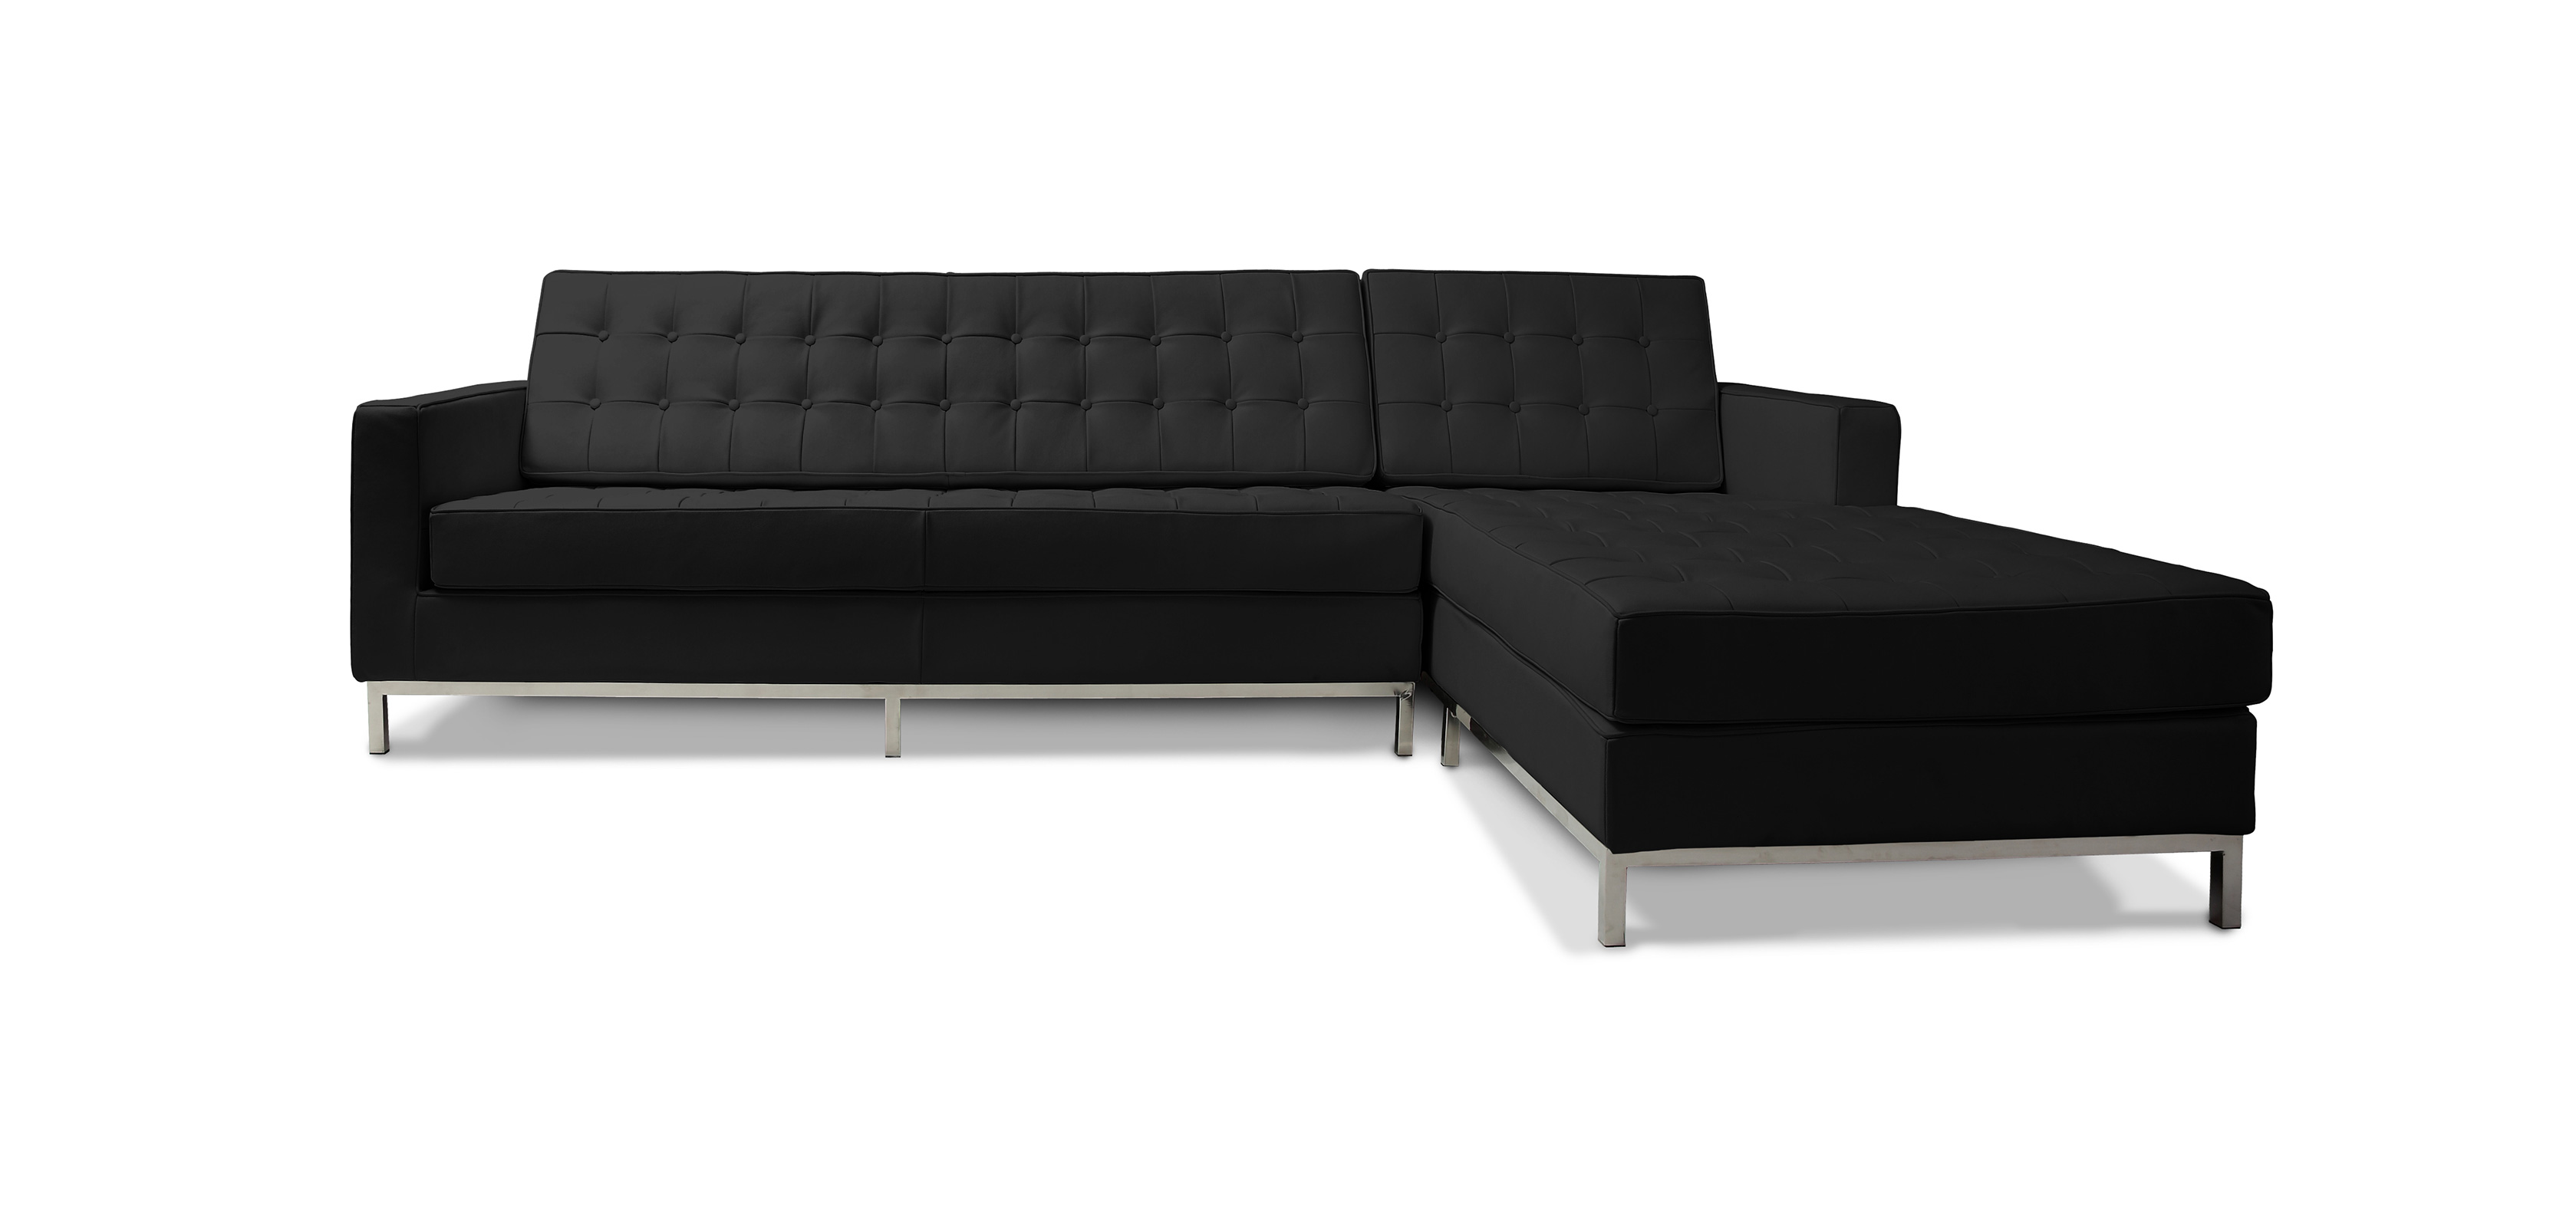 Design Corner Sofa Florence Knoll Style Right Angle Faux Leather Corner Sofas